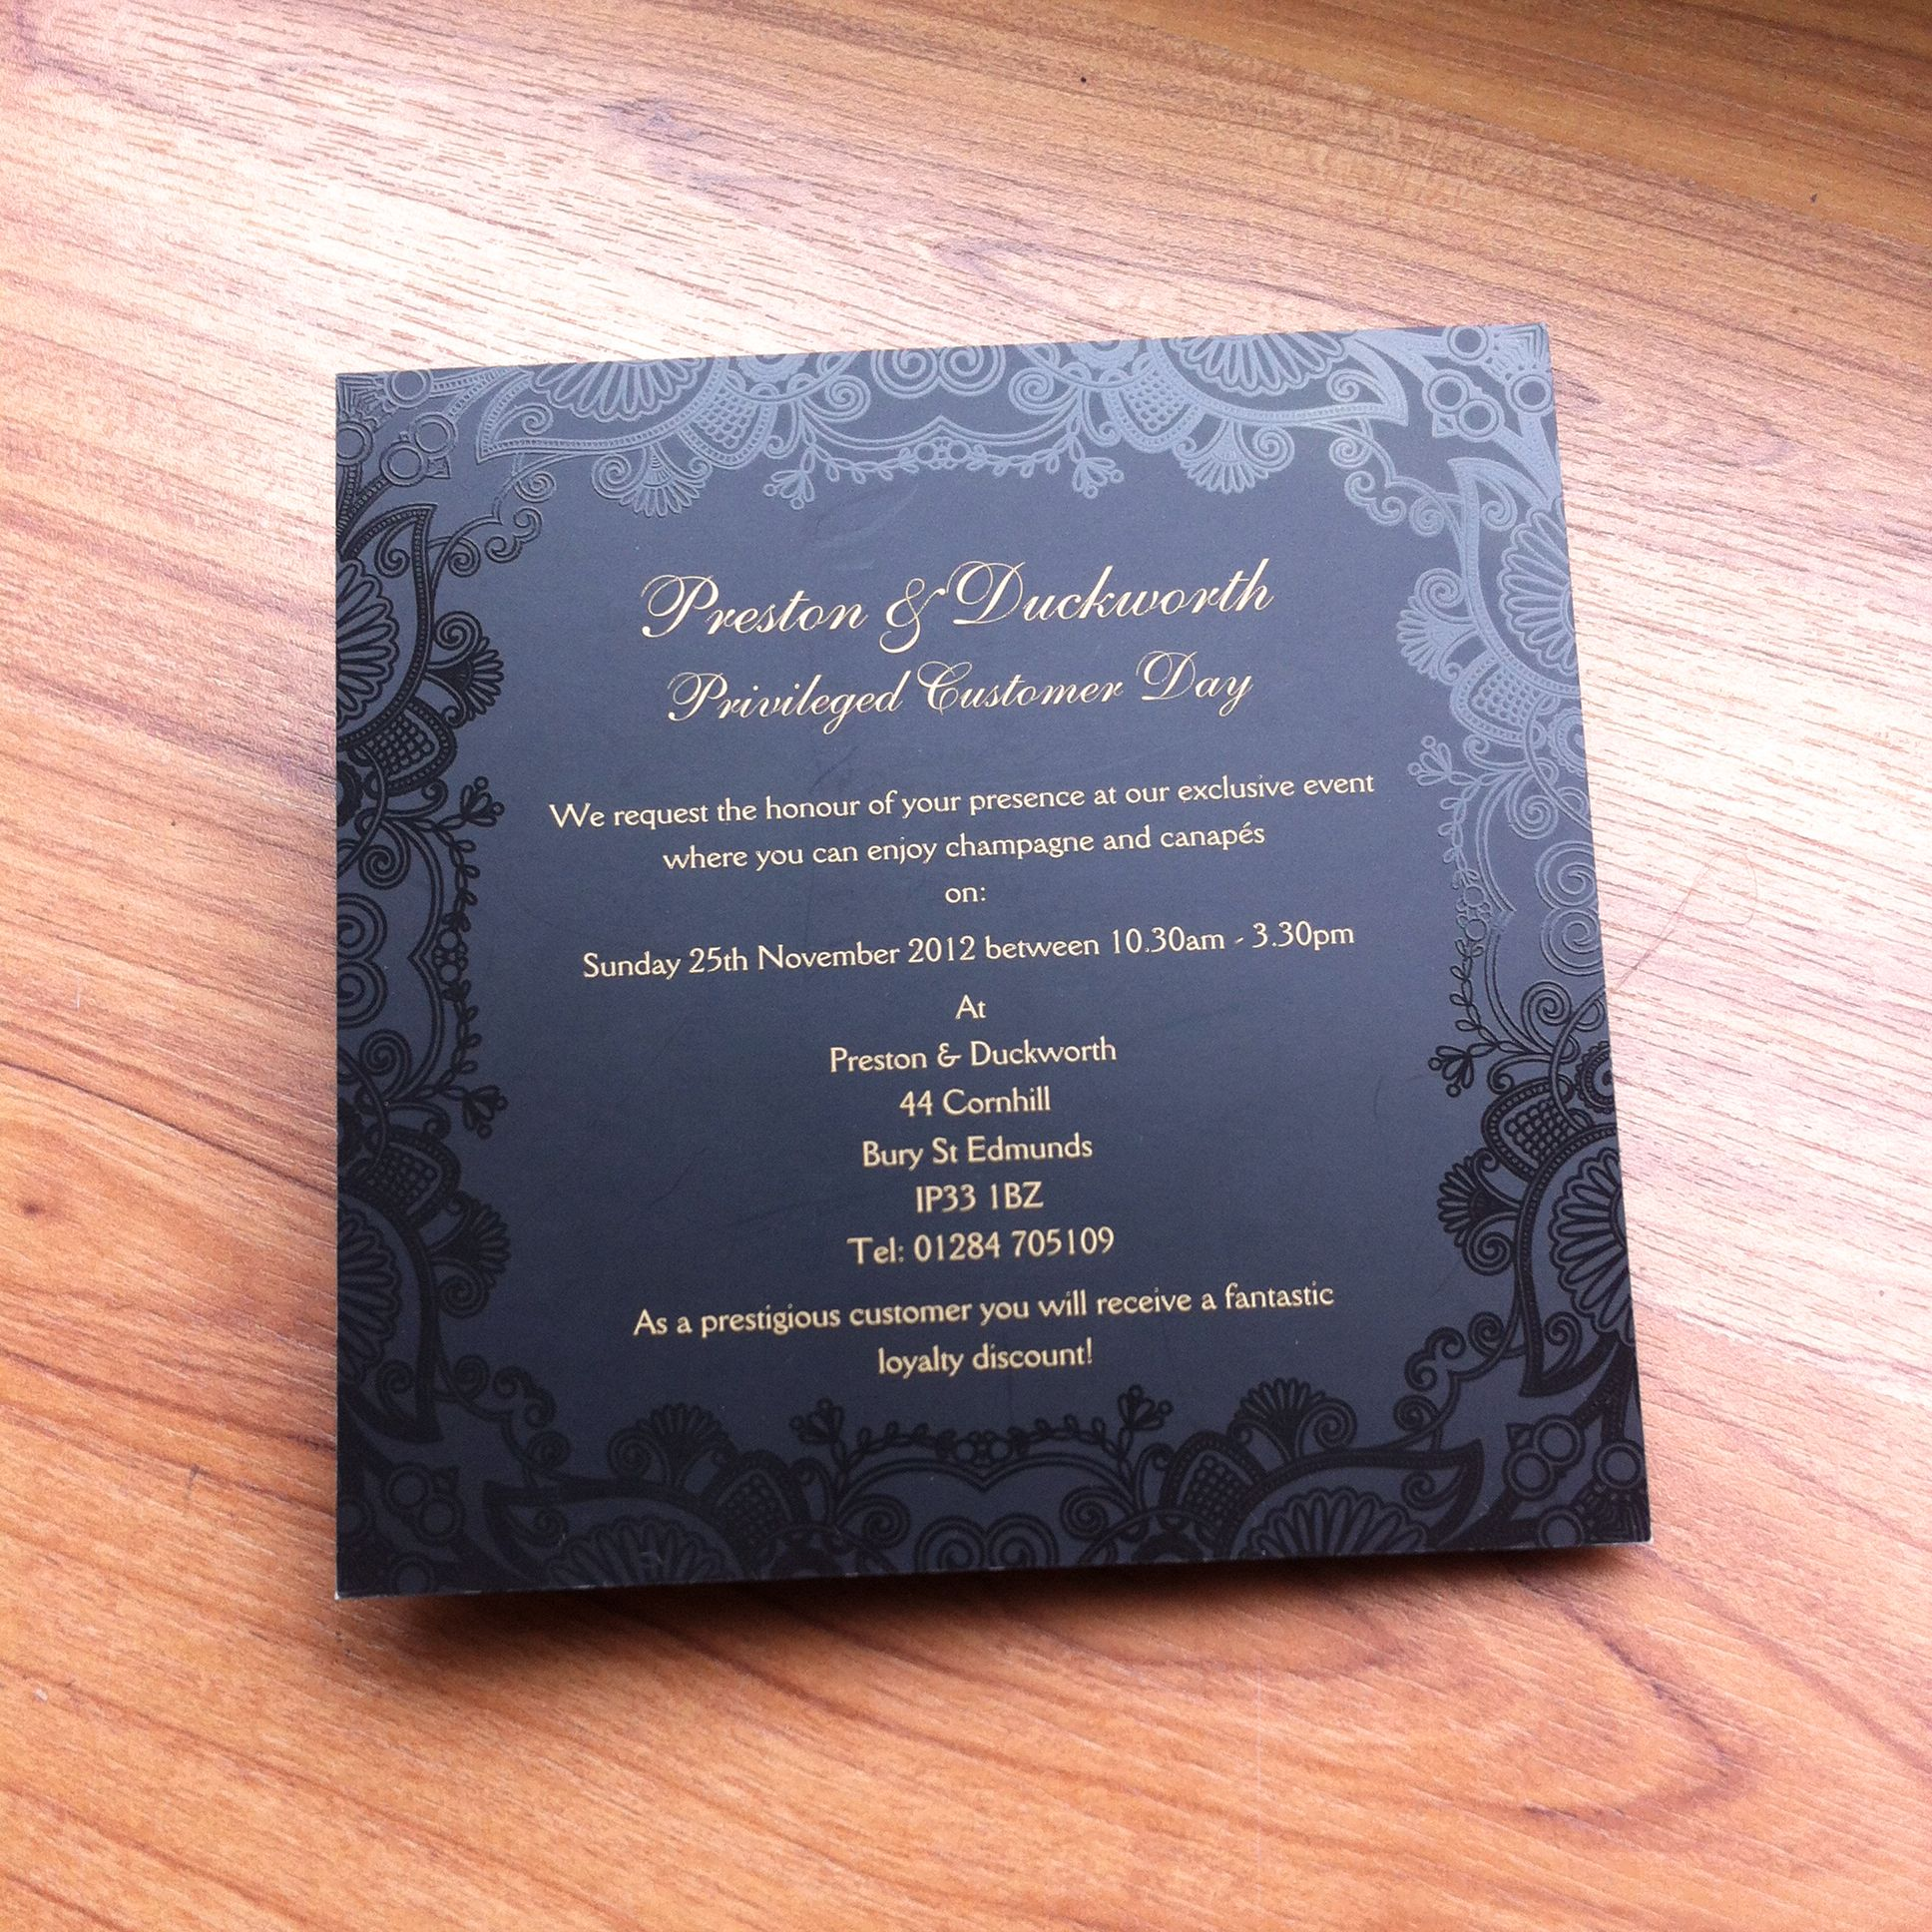 Spot UV invitation 400gsm silk with matt lamination and spot UV